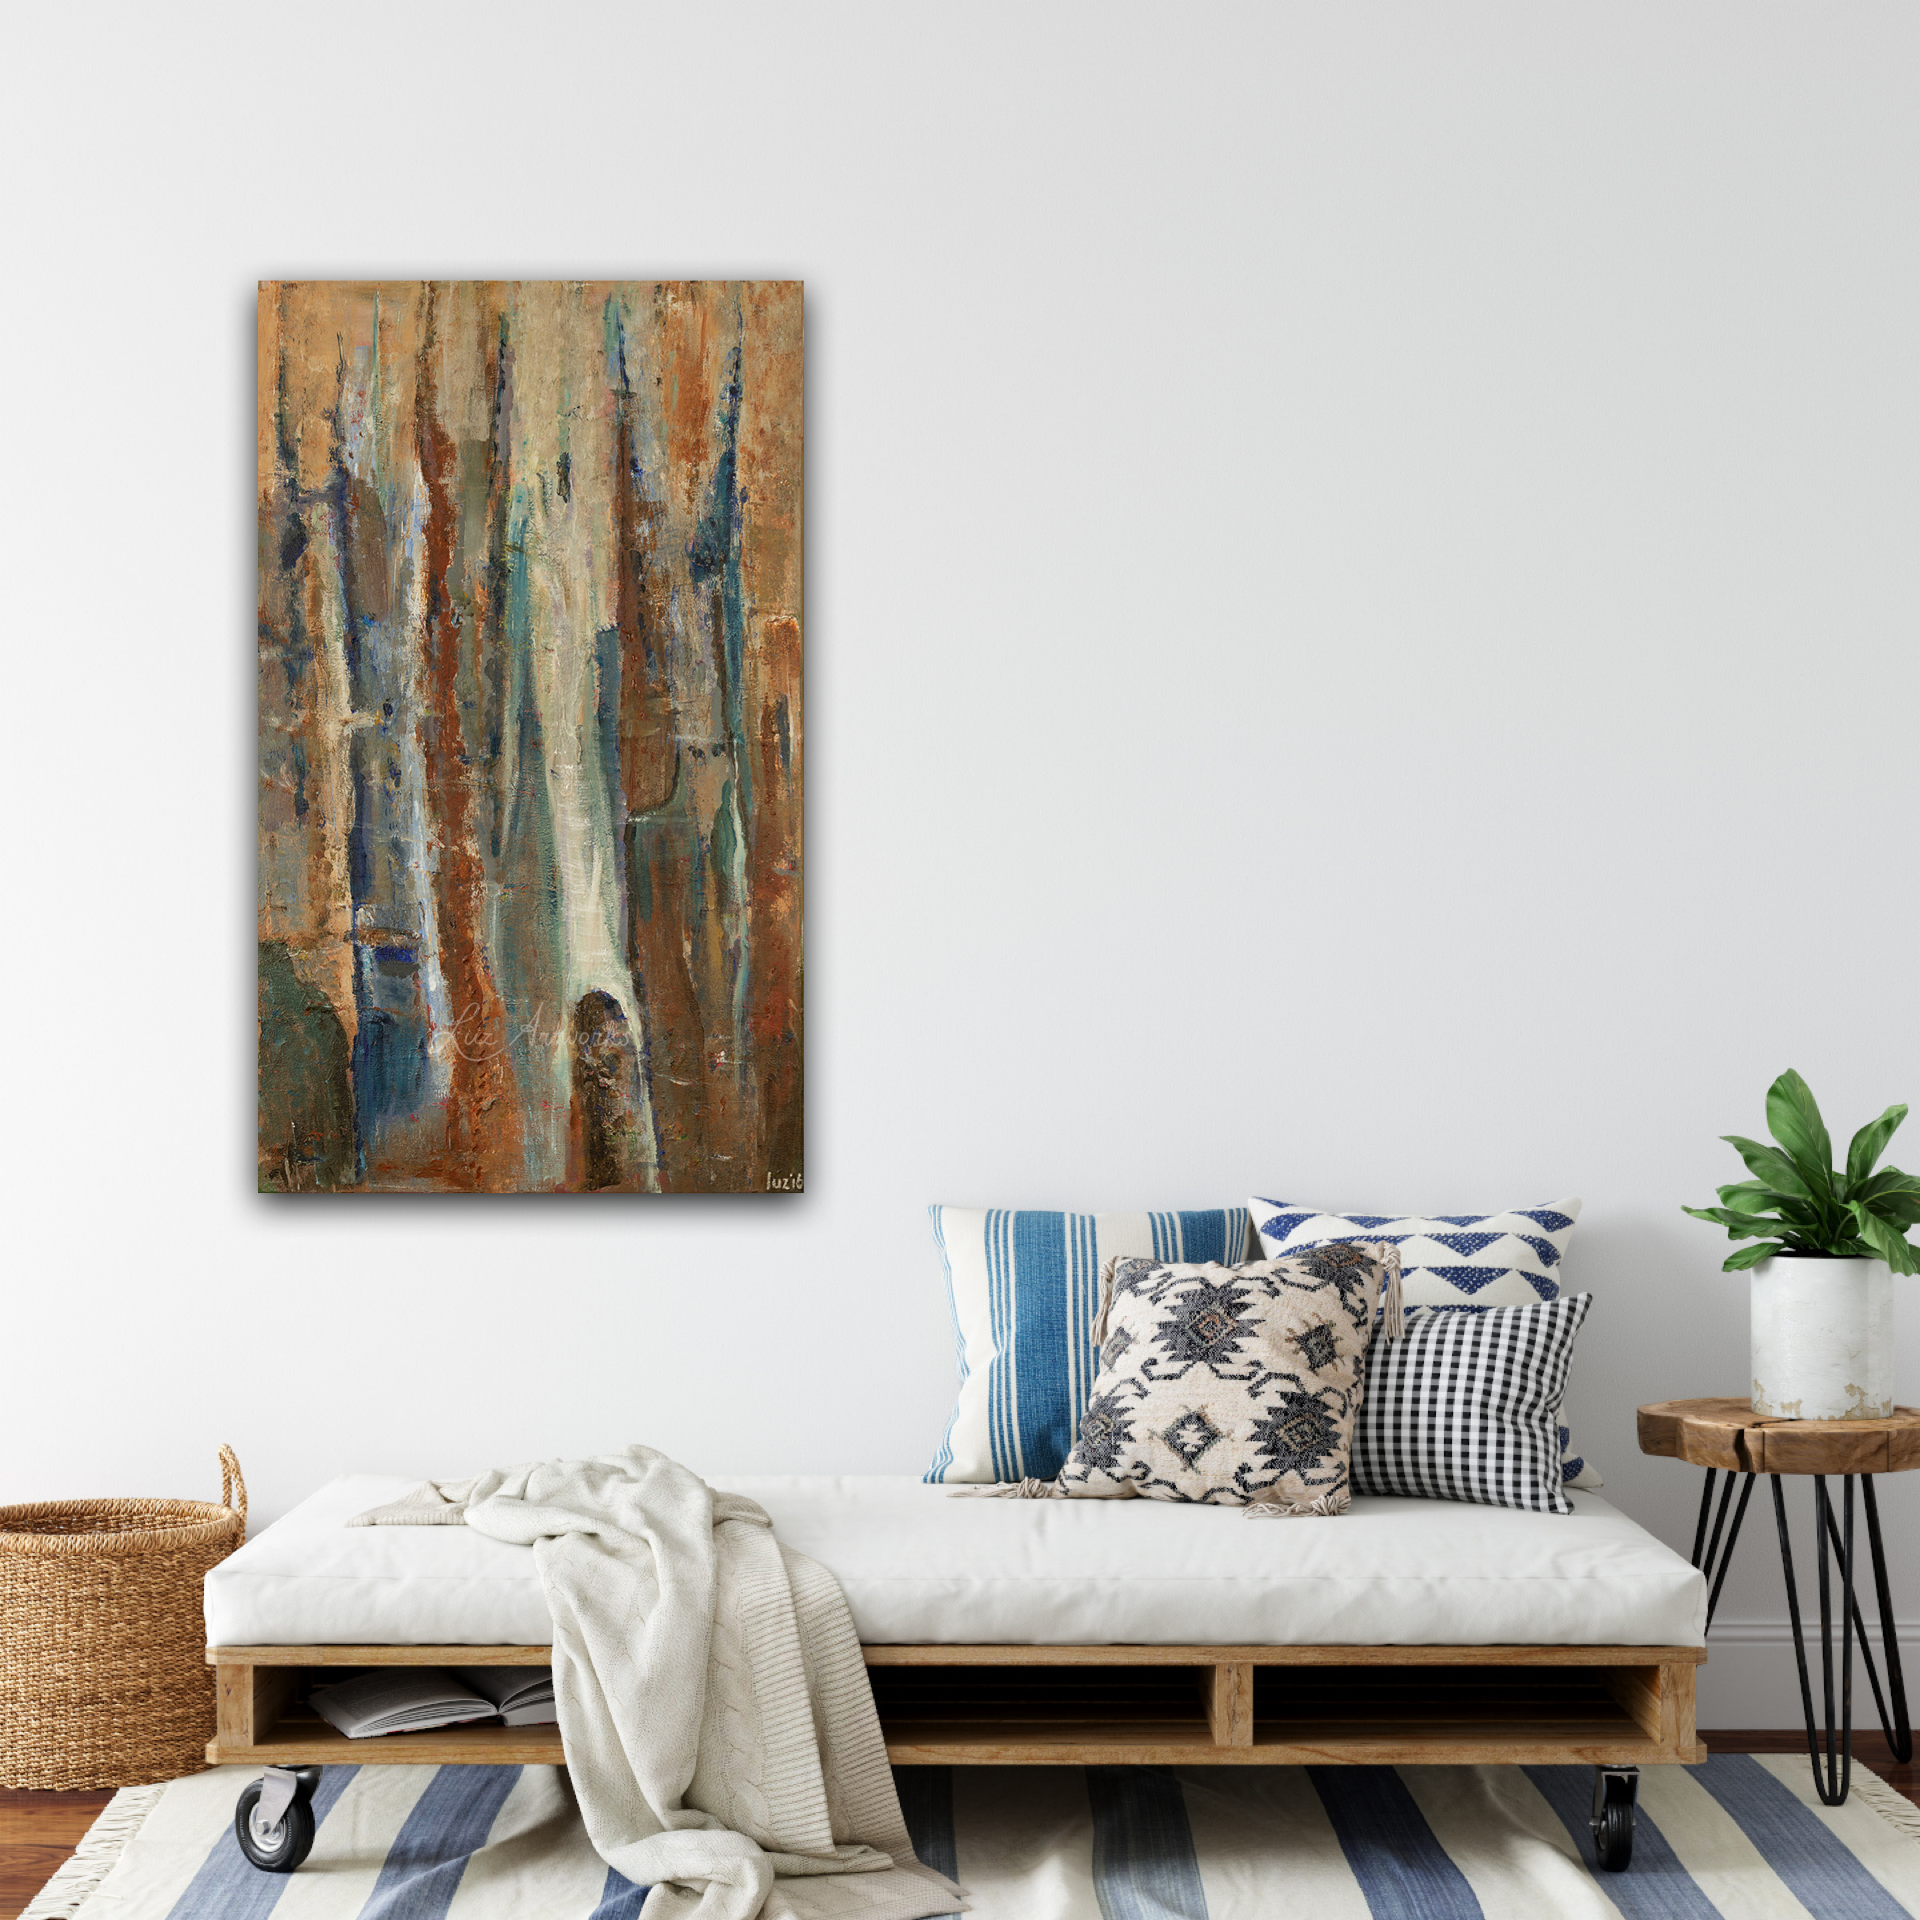 Painting Openings on the Wall by Luz Artworks - Marloes Bloedjes